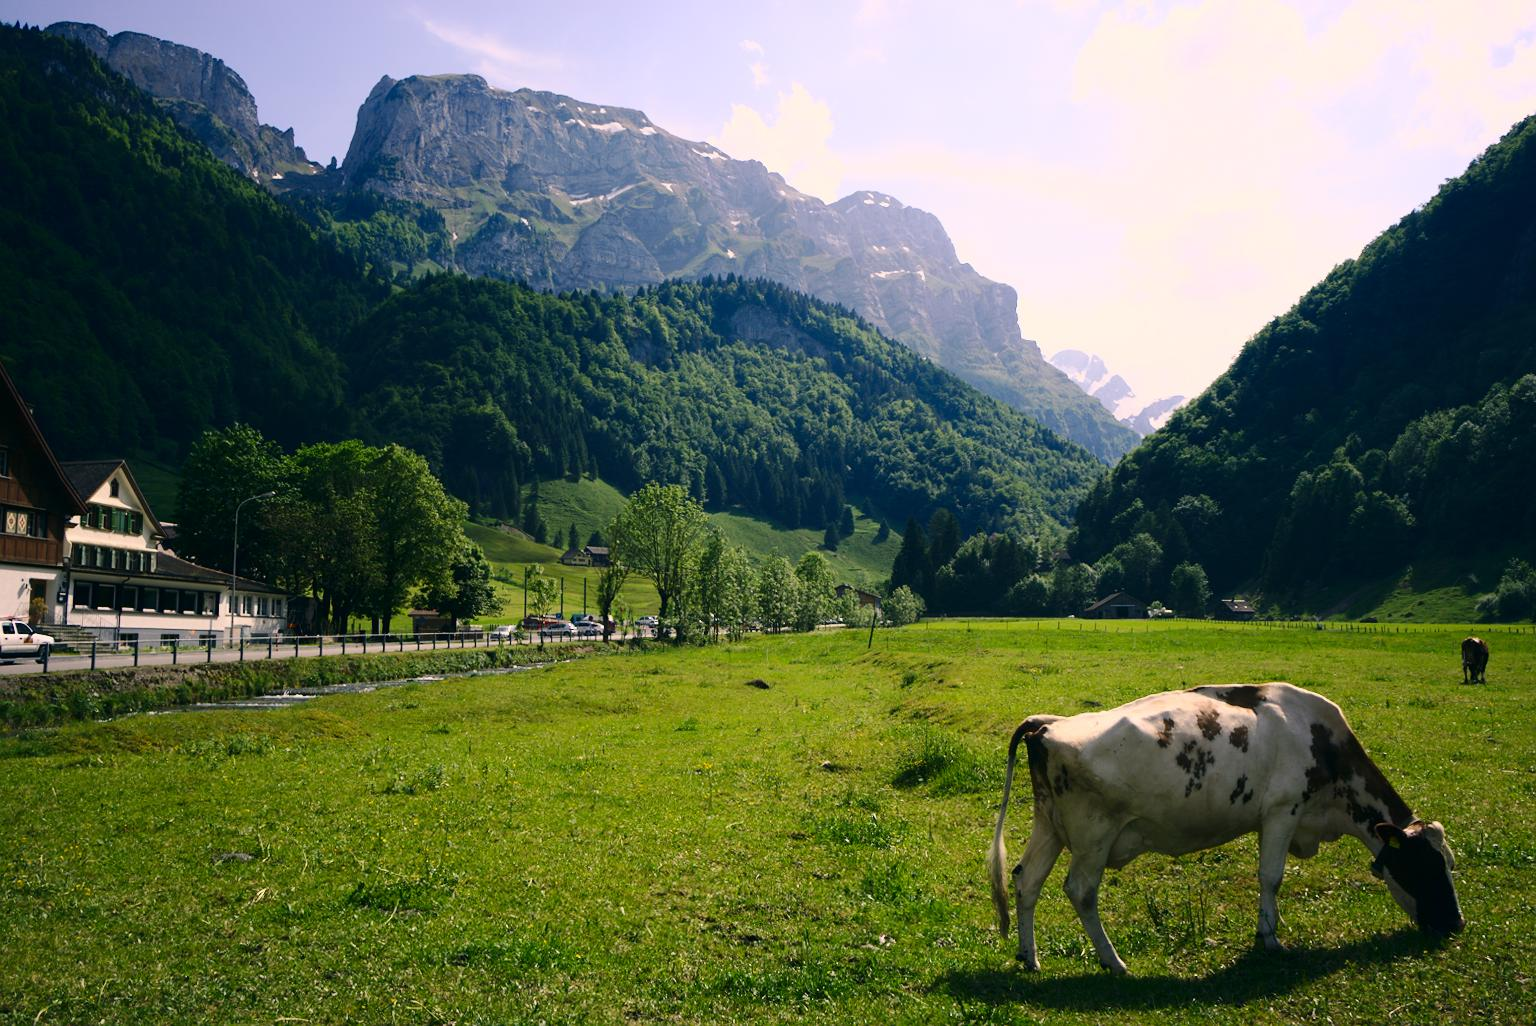 {filename}/img/appenzell-2.jpg